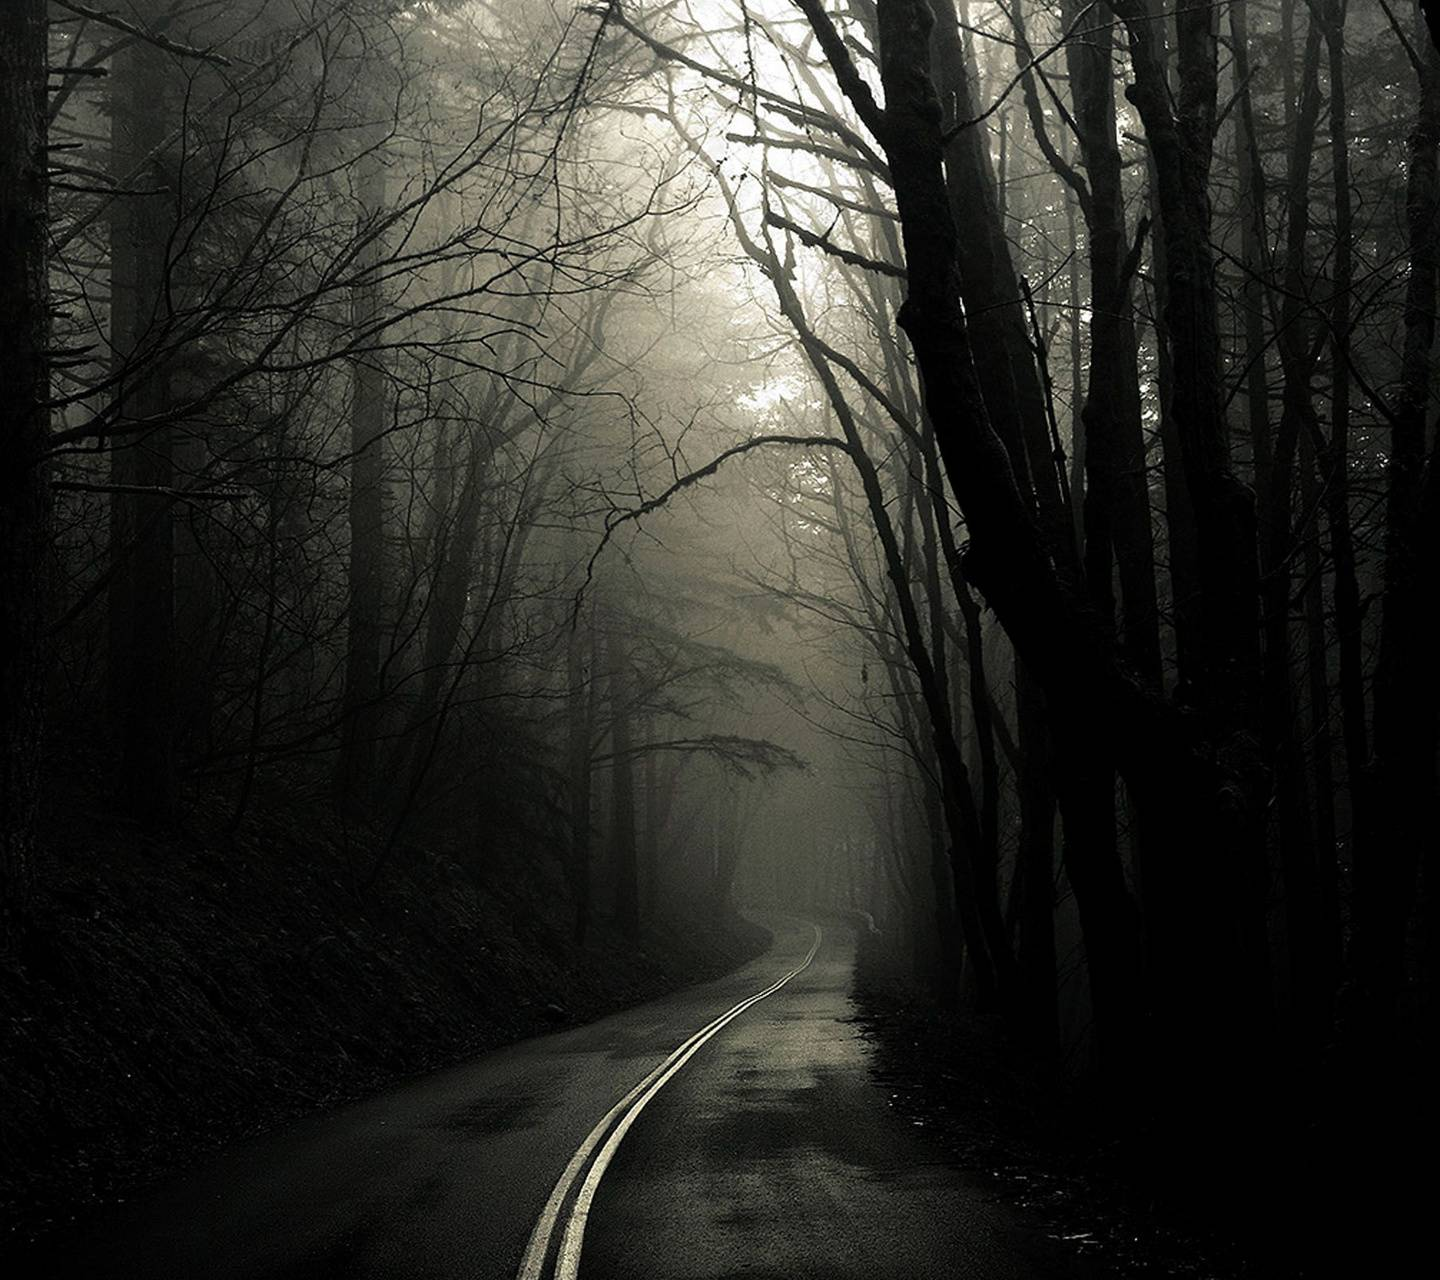 Road to Darkness